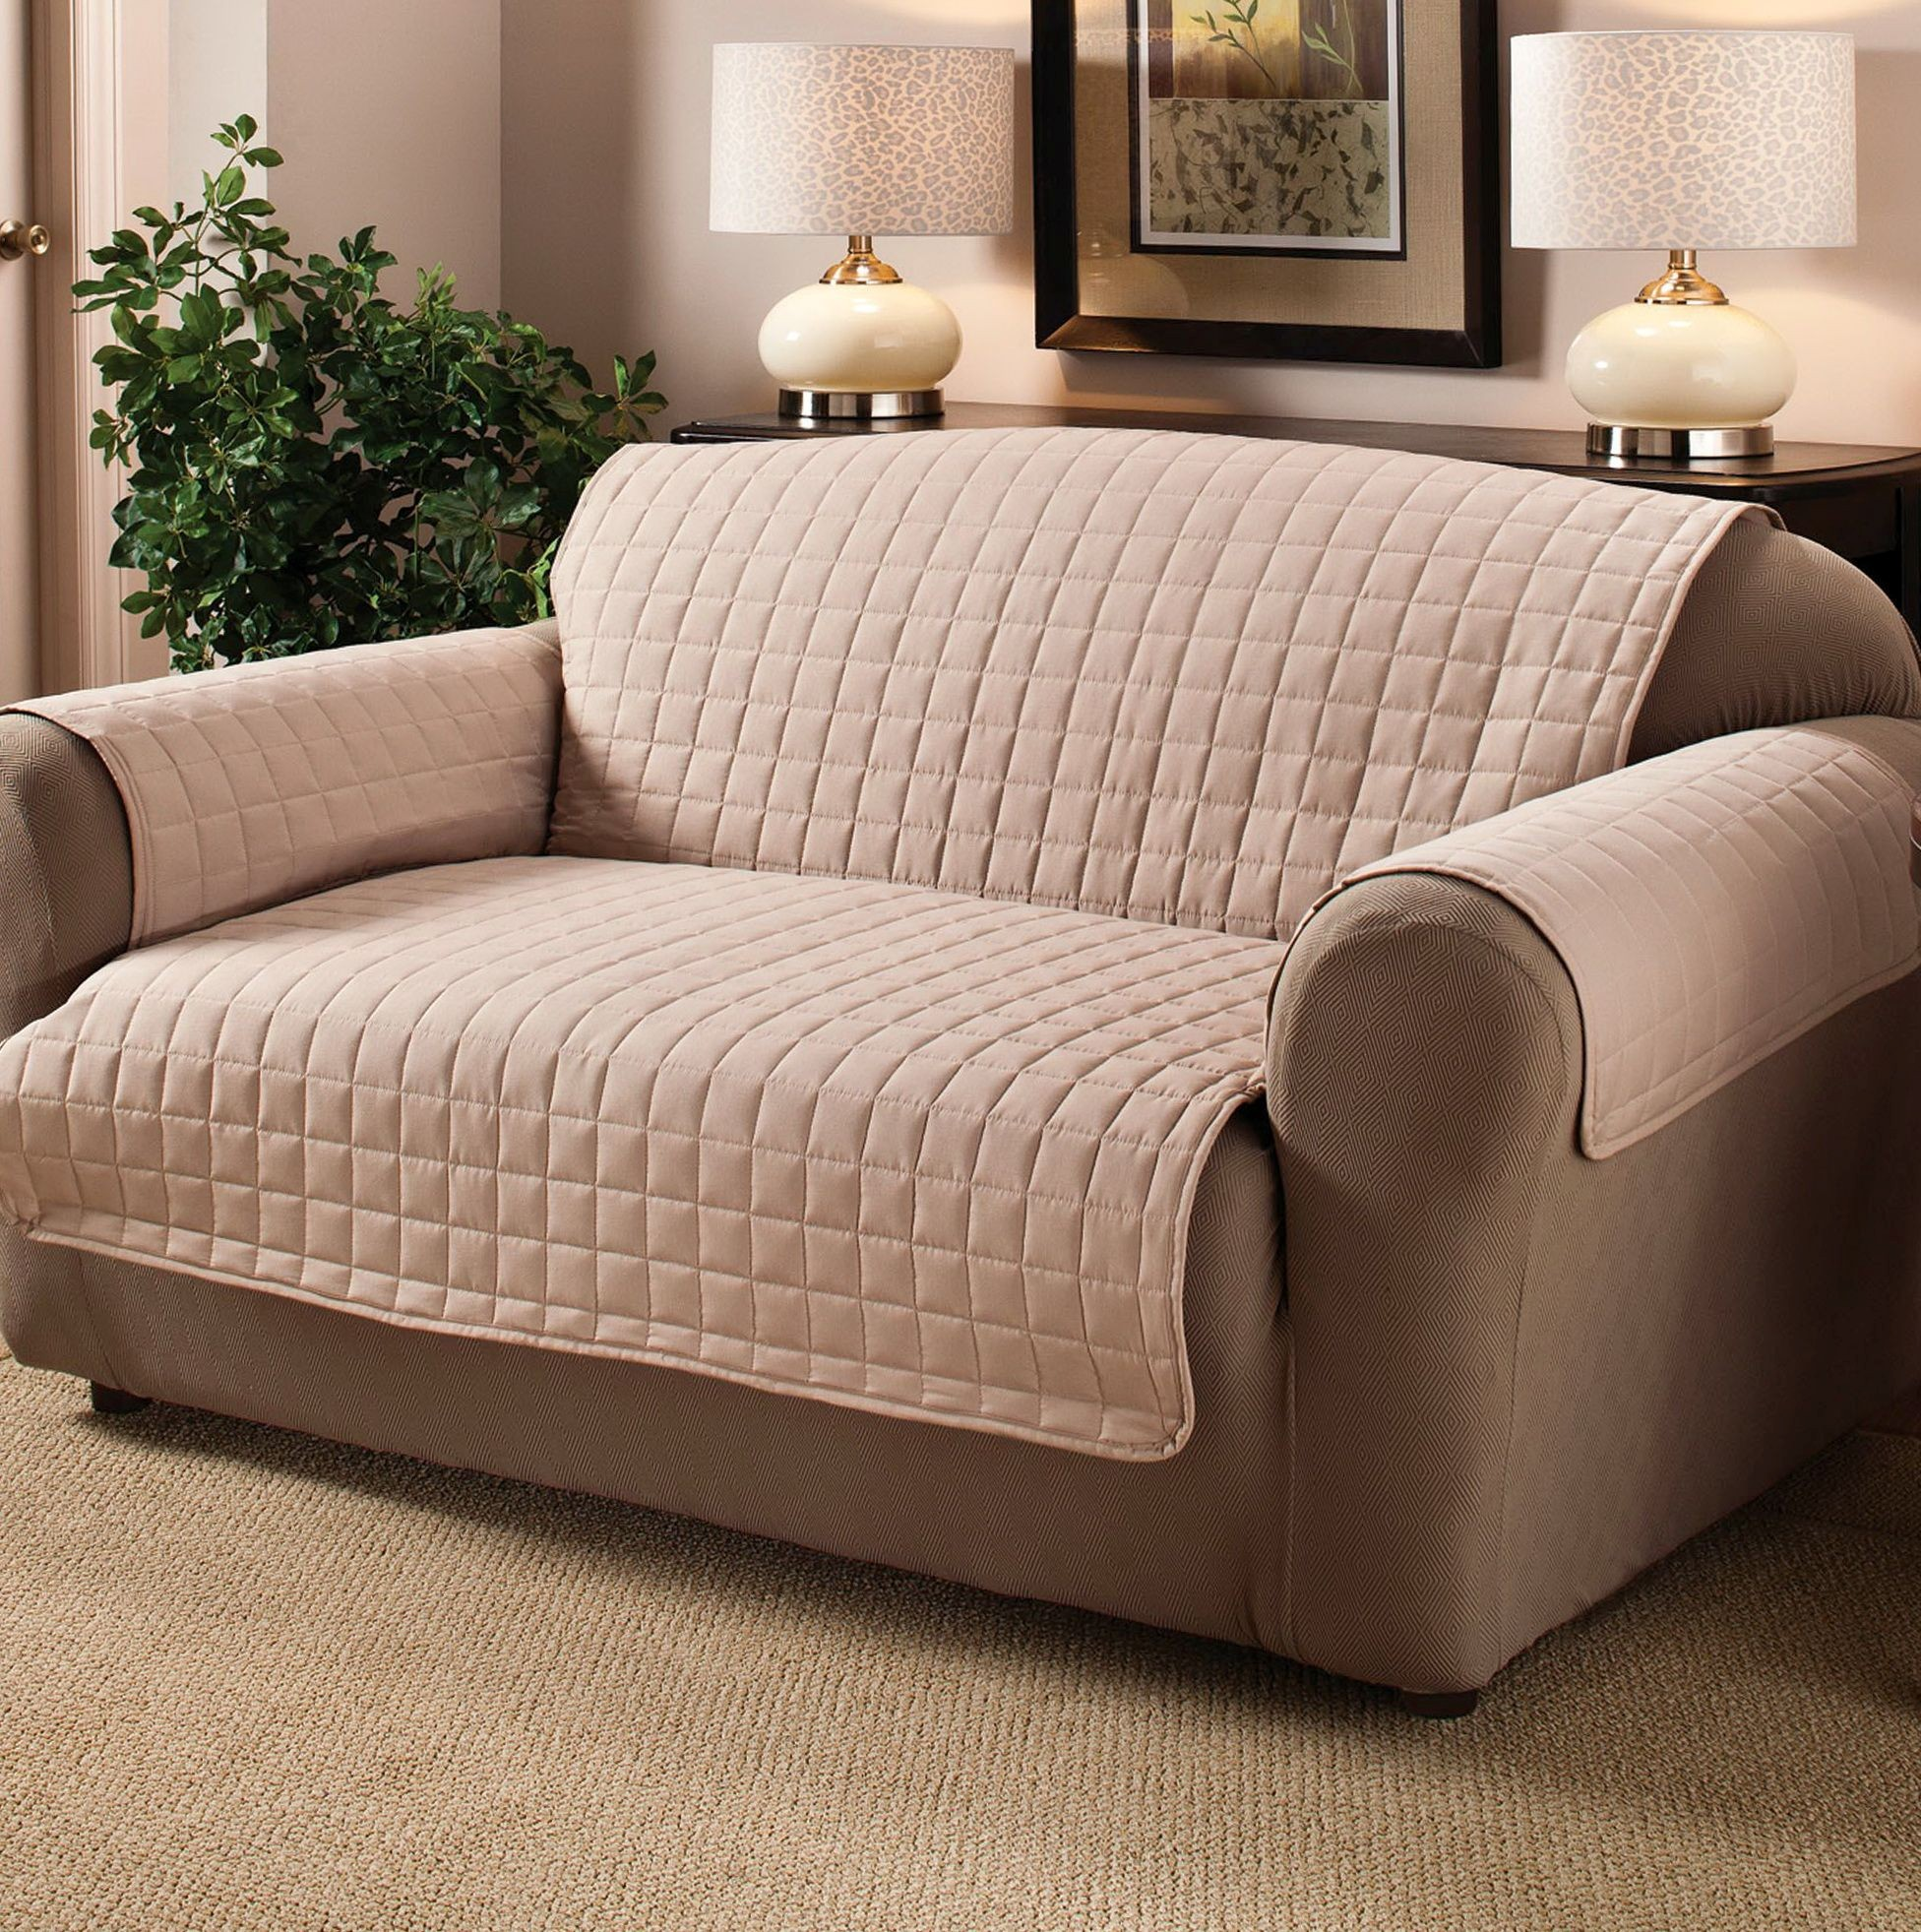 Walmart sofa Covers Best Living Room Recliner sofa Covers Couch Walmart and Loveseat with Inspiration